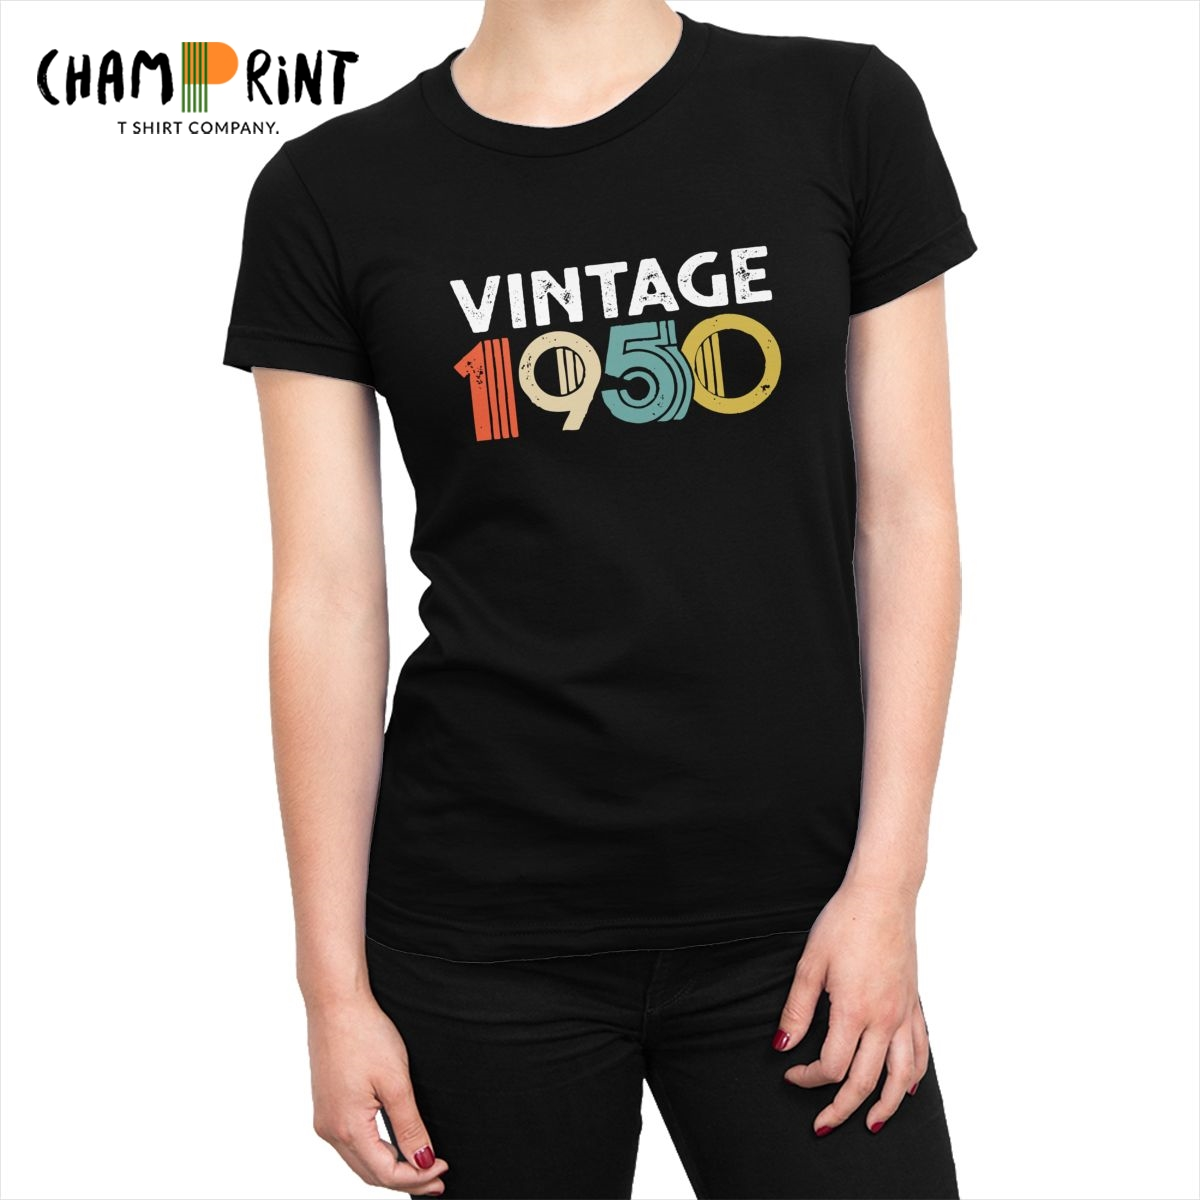 Vintage 1950 70th <font><b>Birthday</b></font> Women's T-<font><b>shirt</b></font> <font><b>70</b></font> Years Old Tumblr Tshirt Cotton Tops Tees Crazy Printed Graphic Clothing for Female image